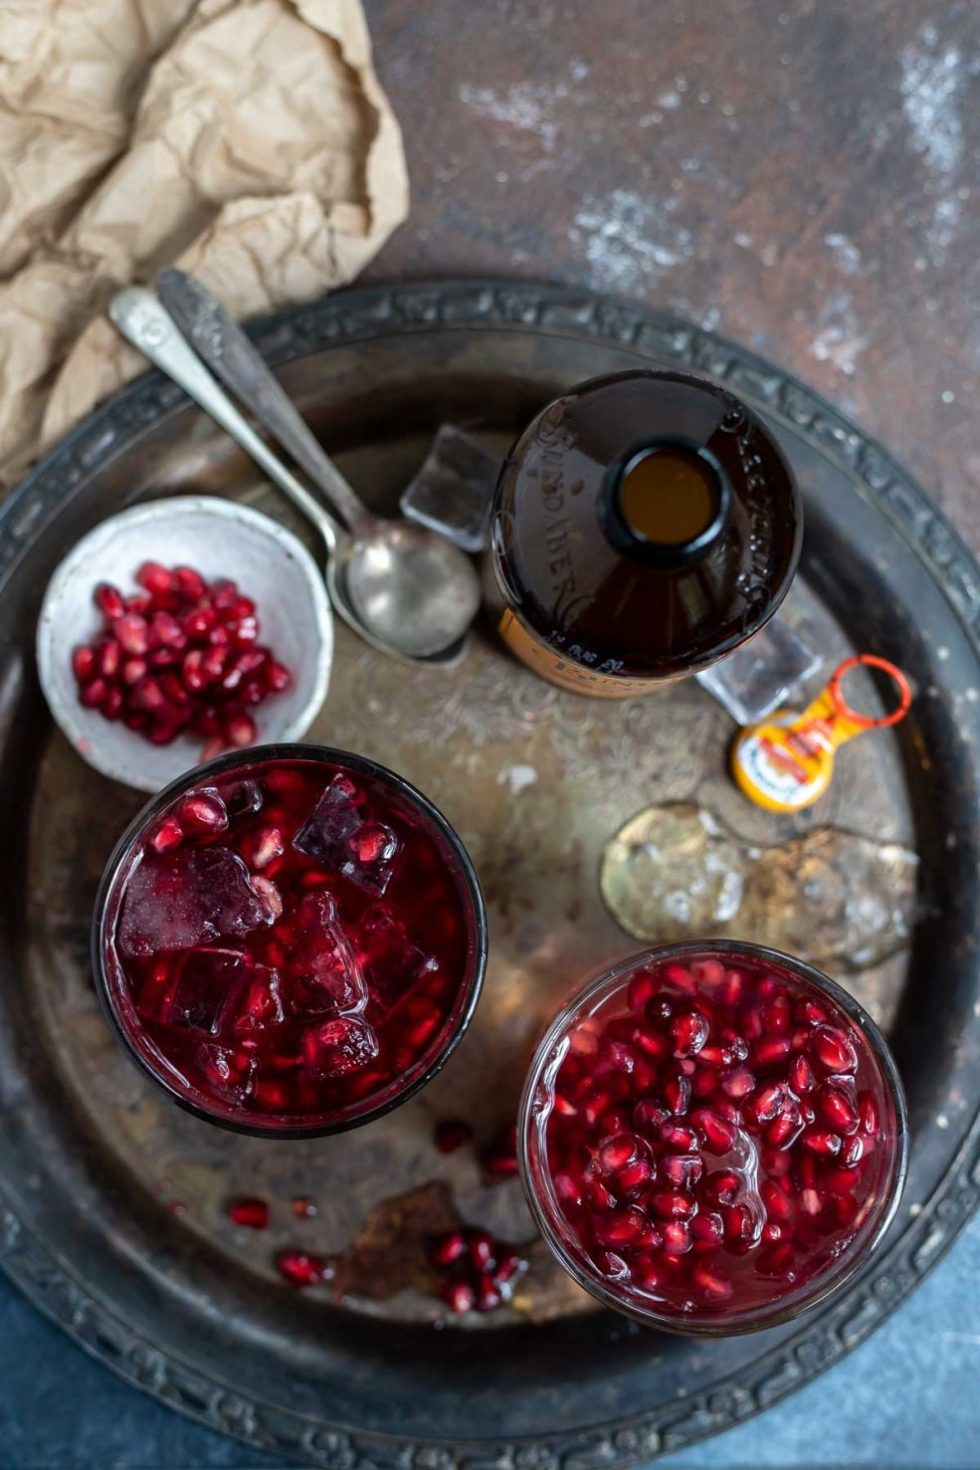 mule cocktails on tarnished silver tray along with pomegranate seeds and ginger beer